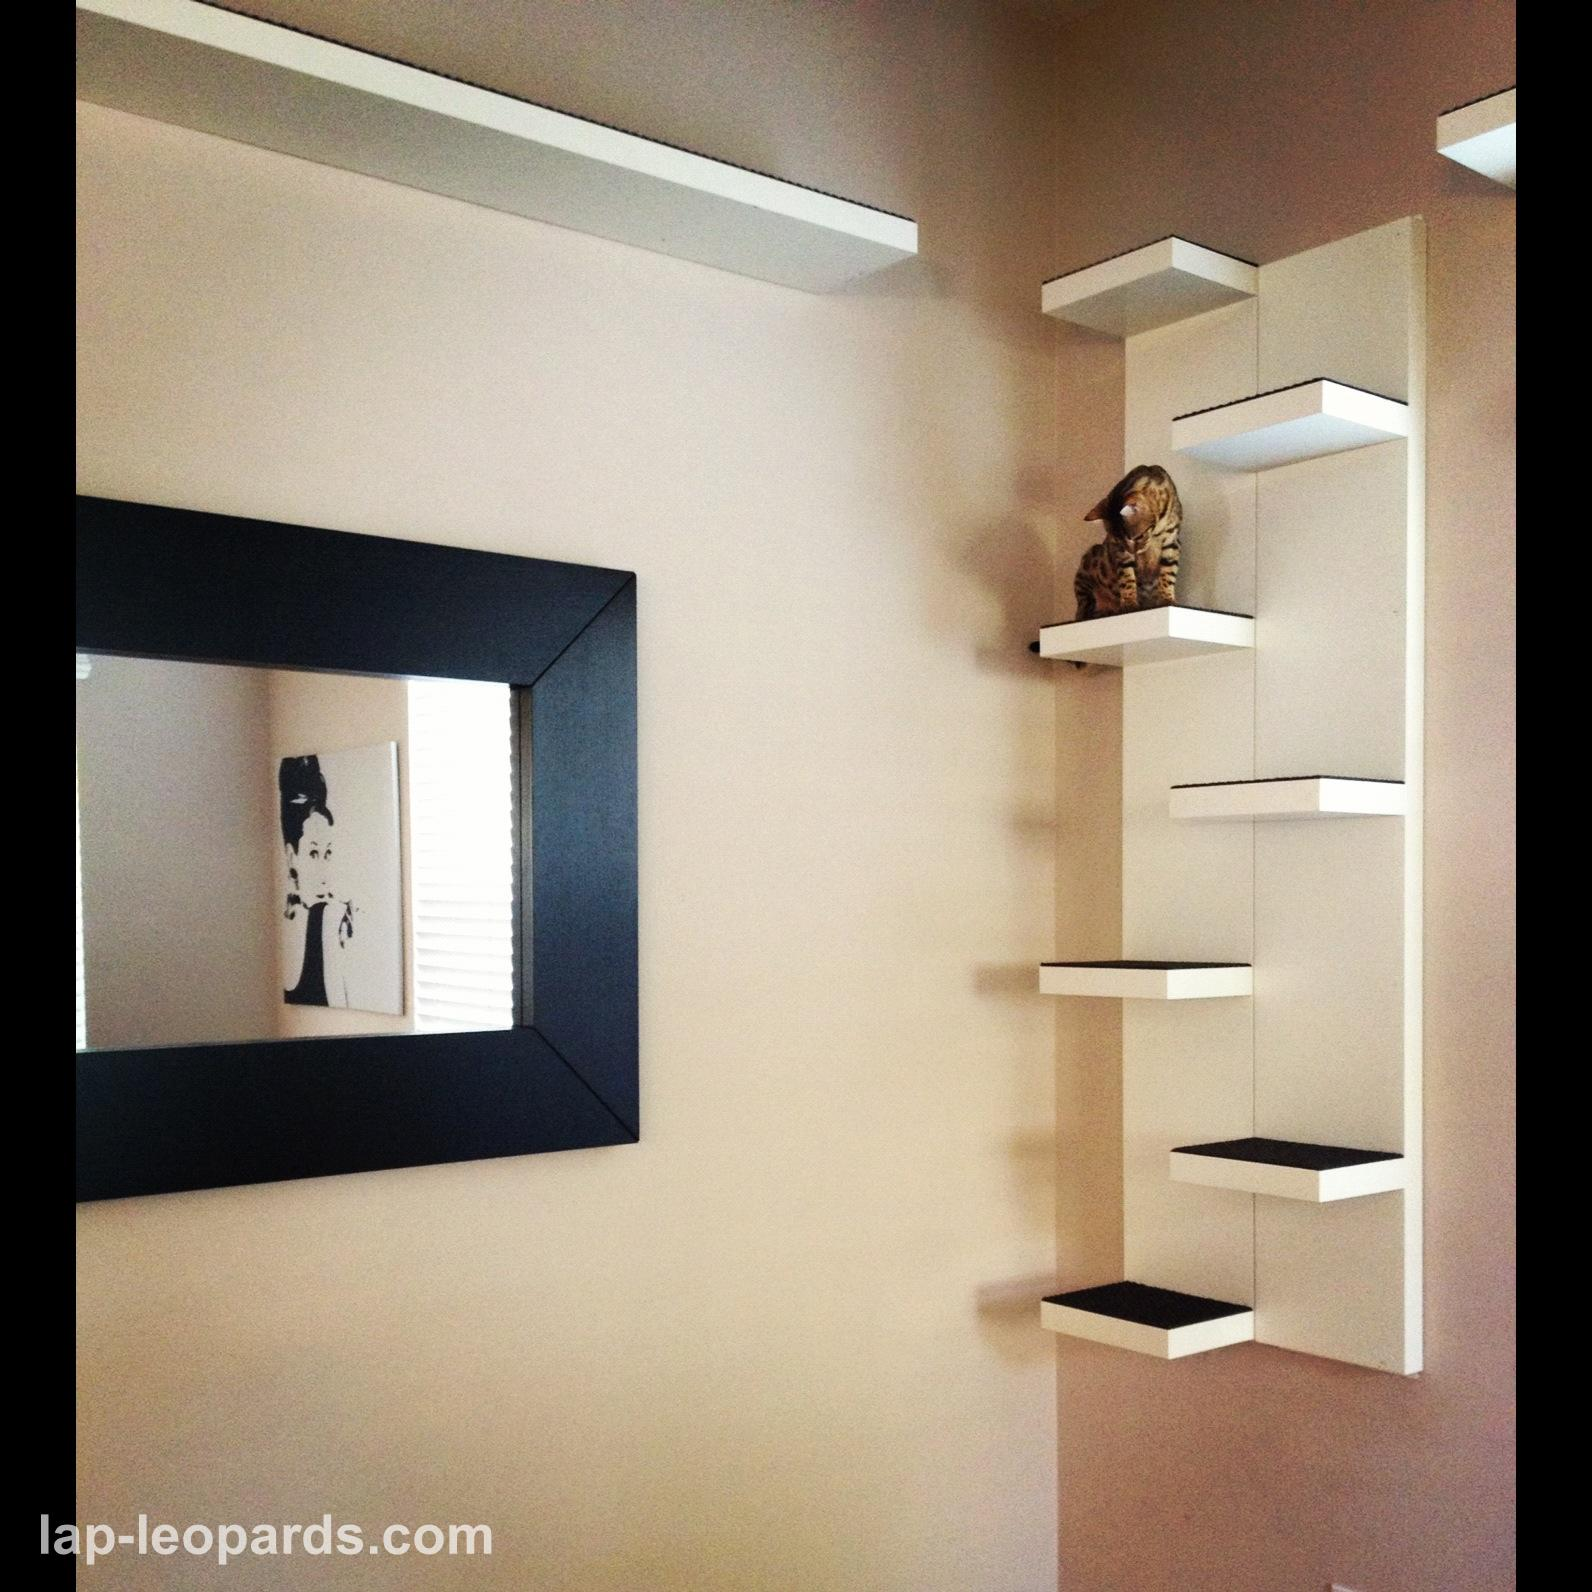 1000 images about cat friendly spaces on pinterest cat - Wall mounted cat furniture ...